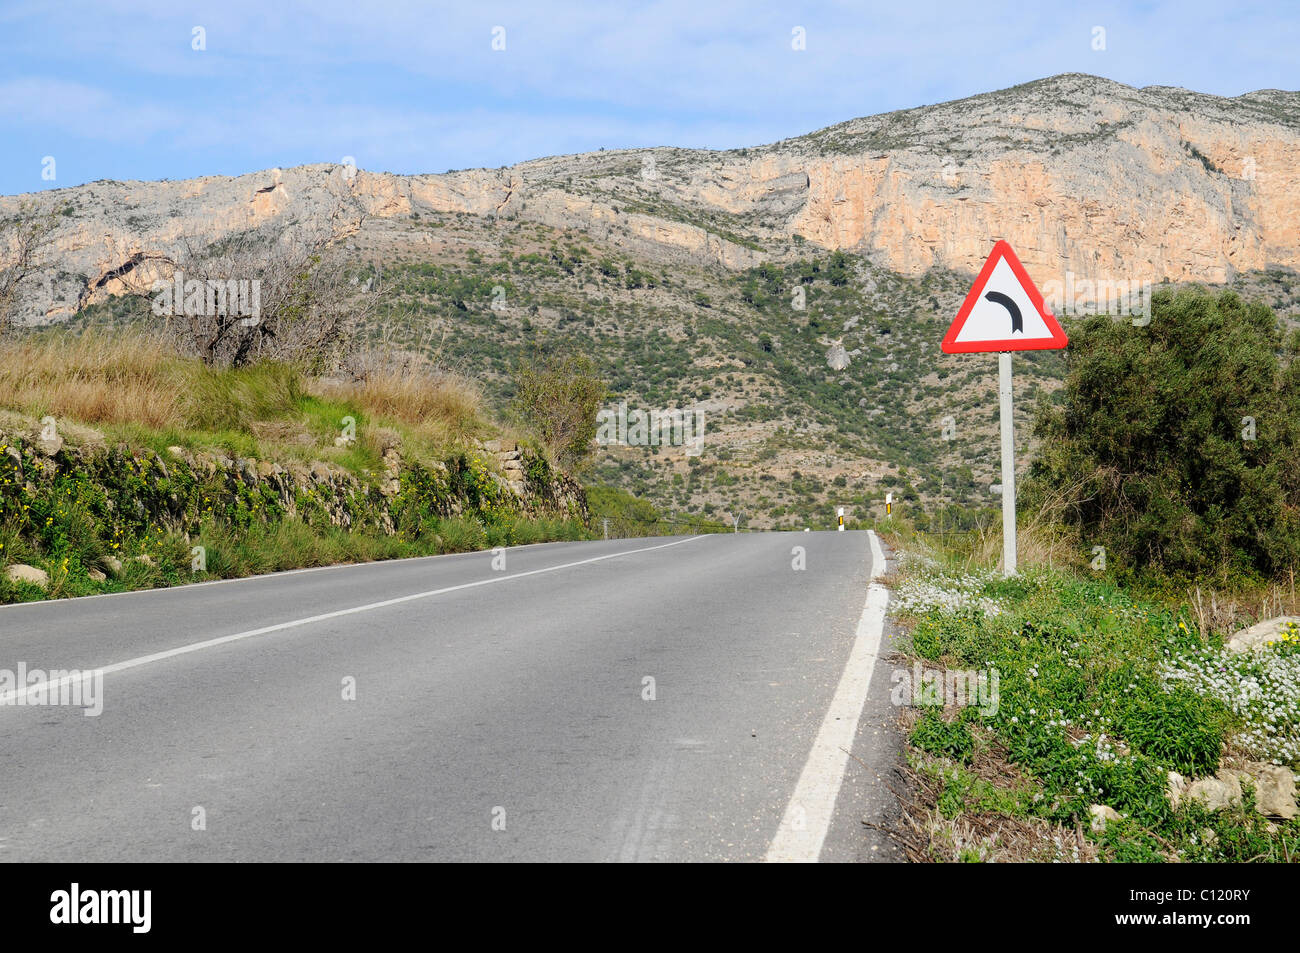 Bend, road, road sign, mountains, Javea, Costa Blanca, Alicante province, Spain, Europe - Stock Image